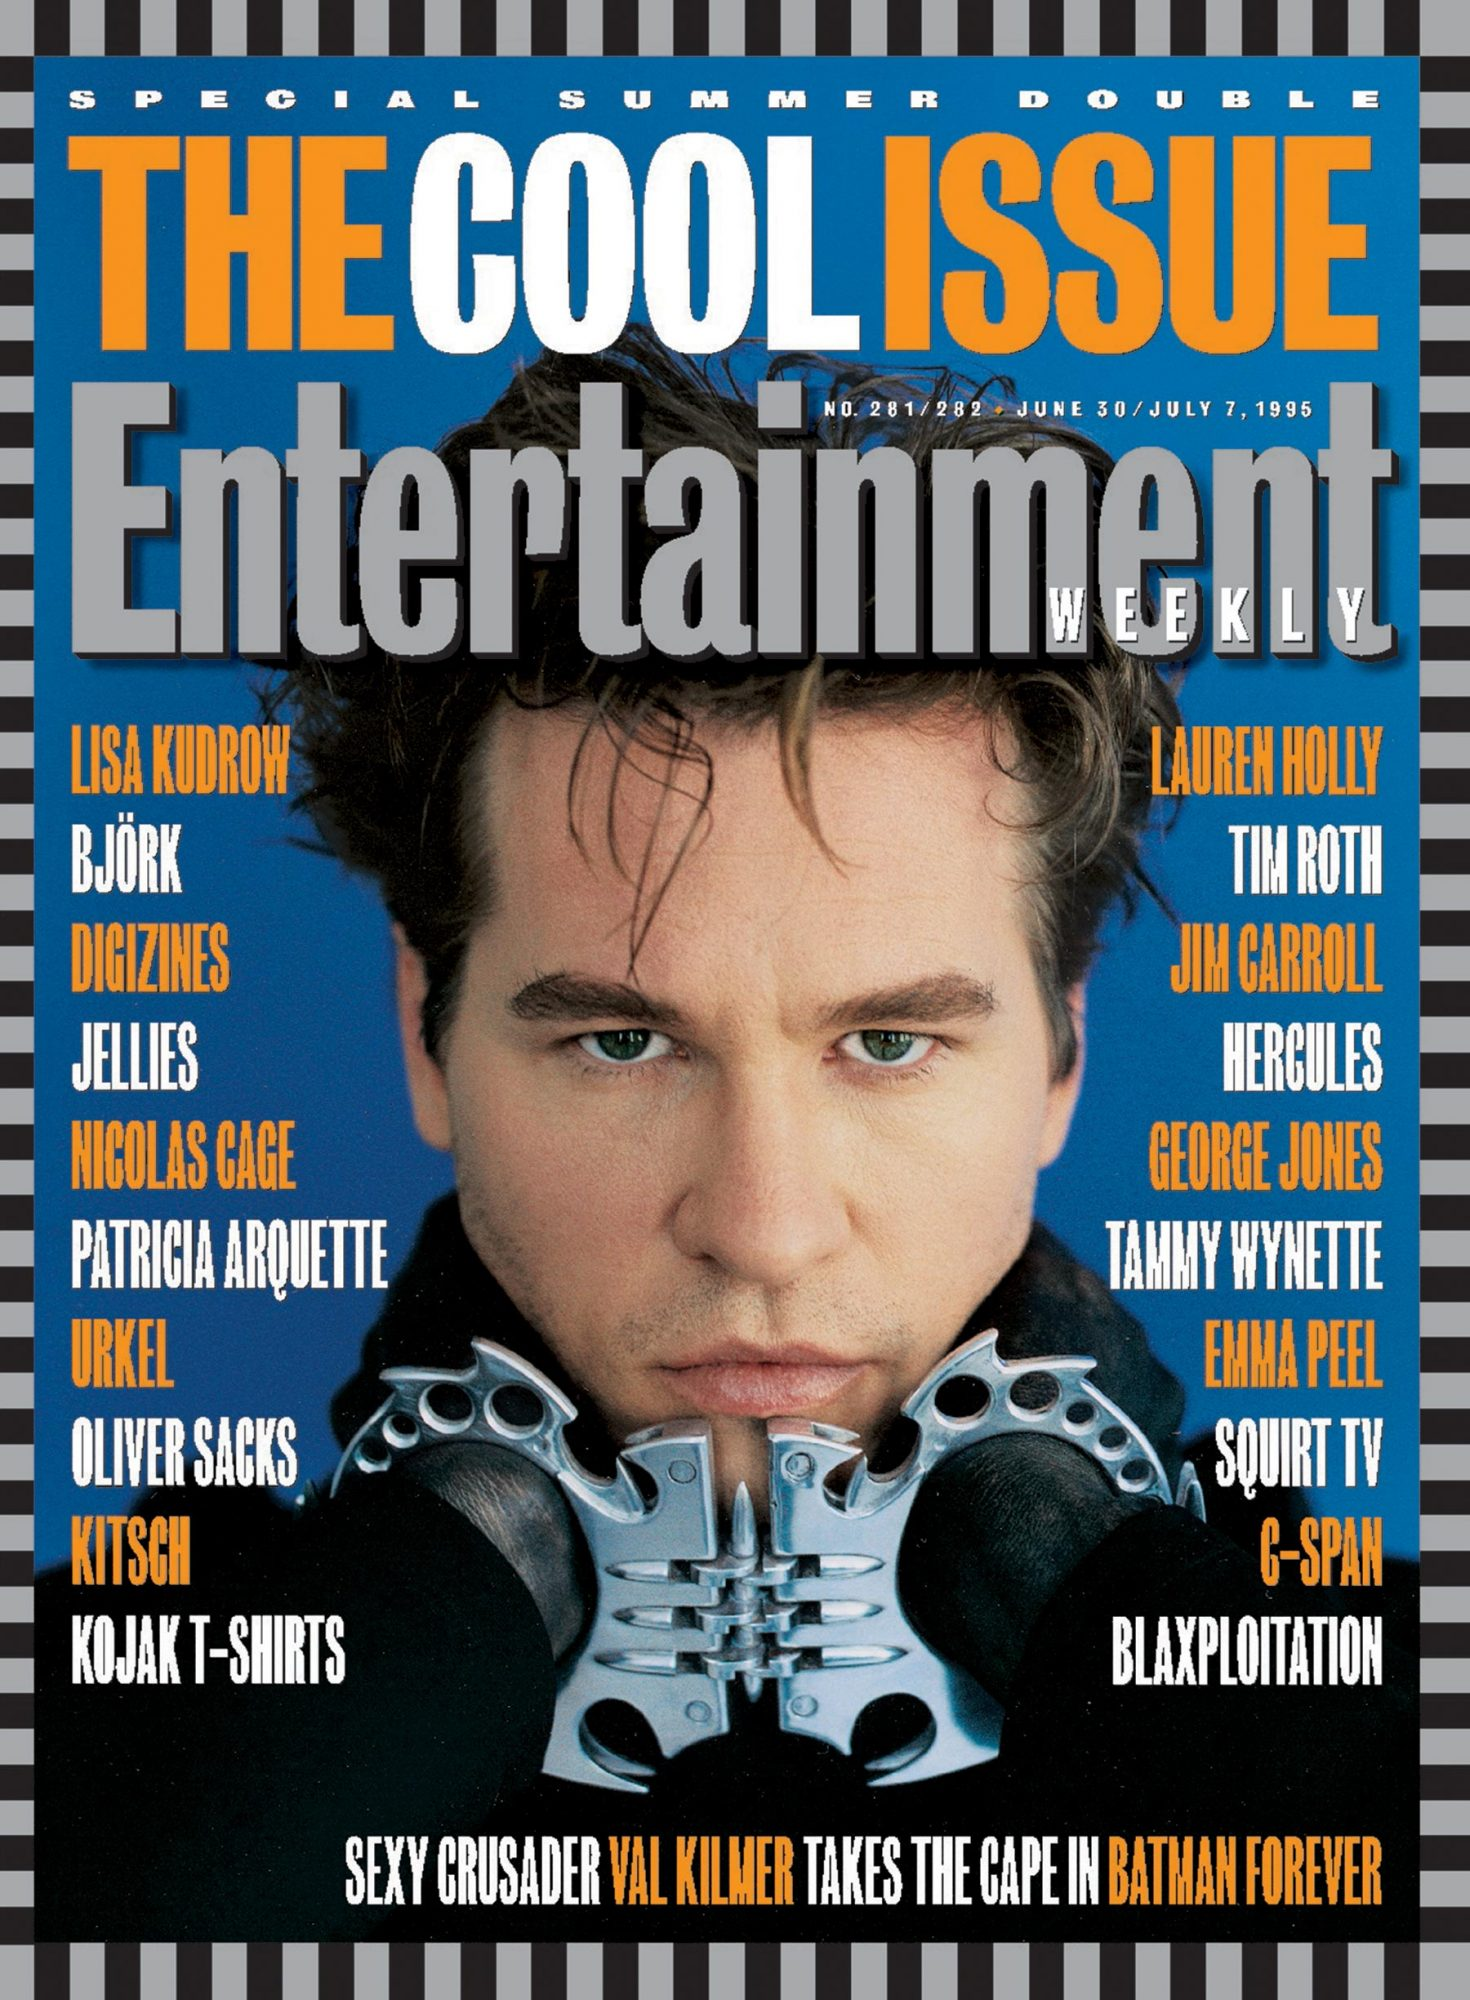 Entertainment WeeklyJune 30, 1995# 281 / 282